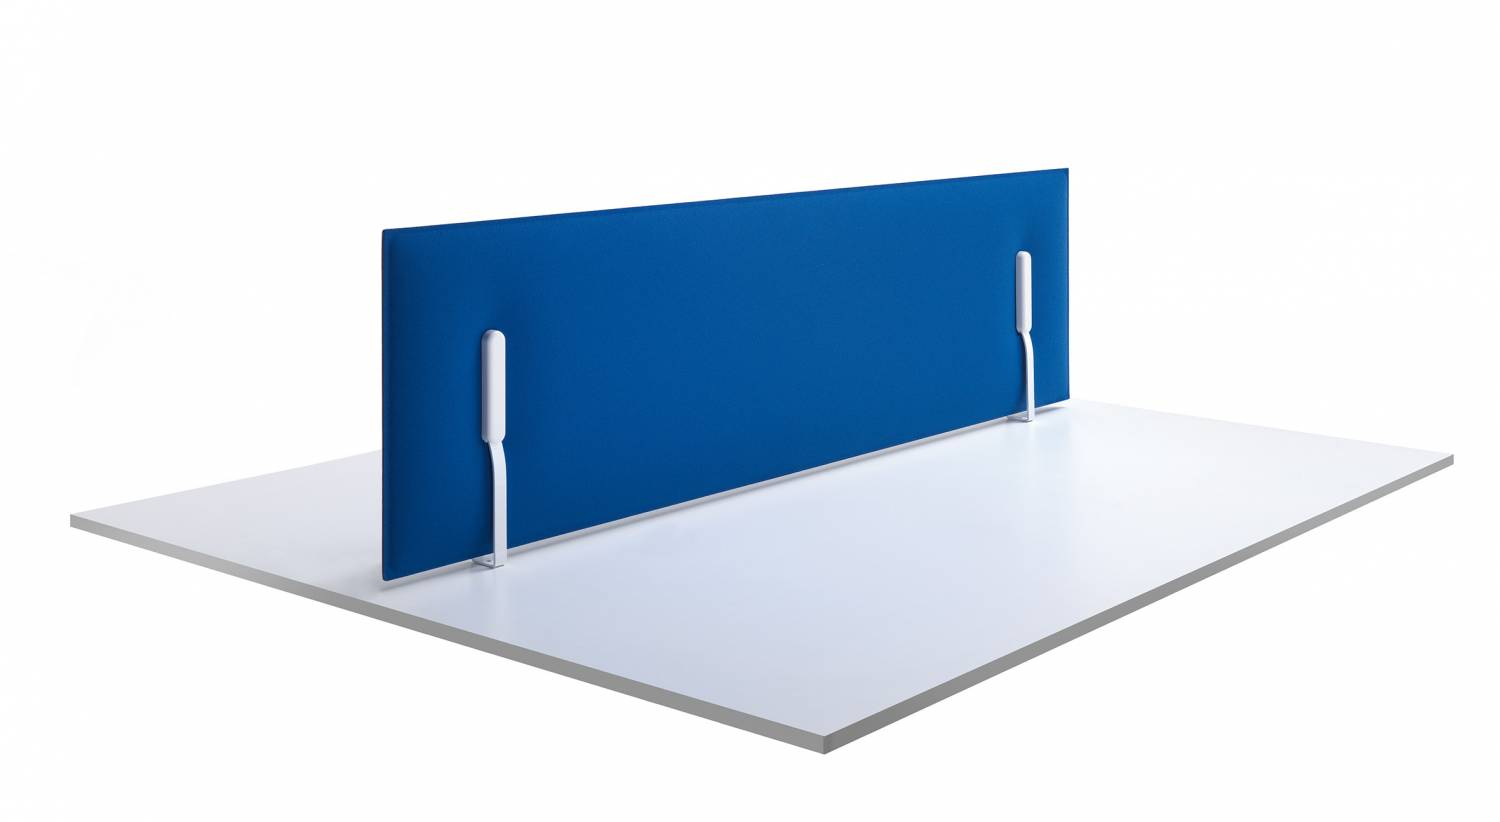 Mitesco-Worktop-Ocee-Acoustic-Desk-Divider-Full-Width-Freestanding